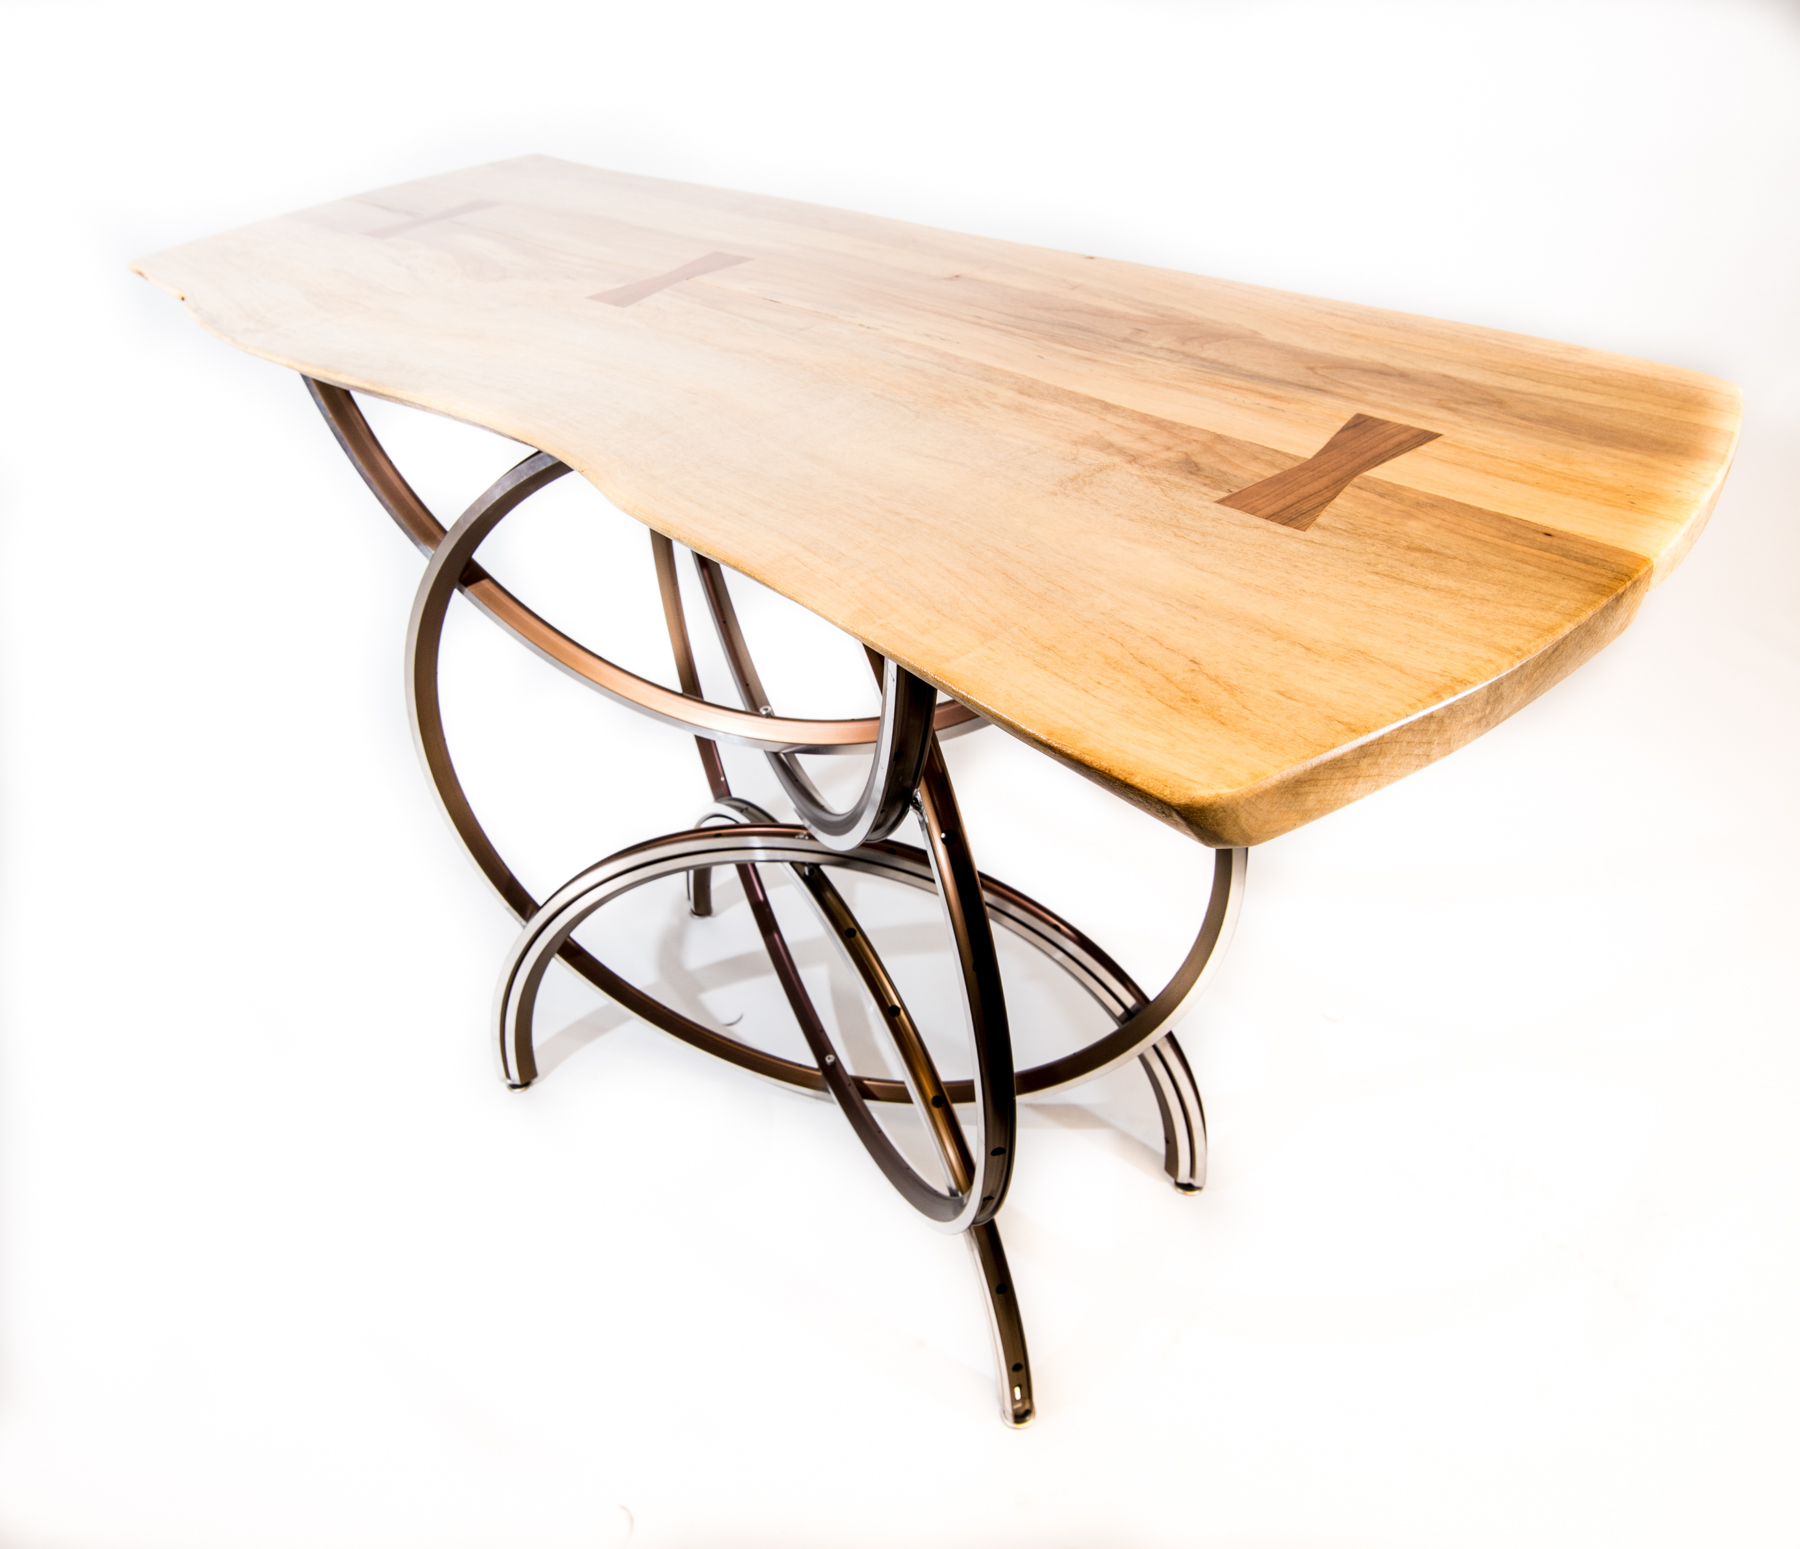 S-2 Aluminum Console/Cafe Table with wood top